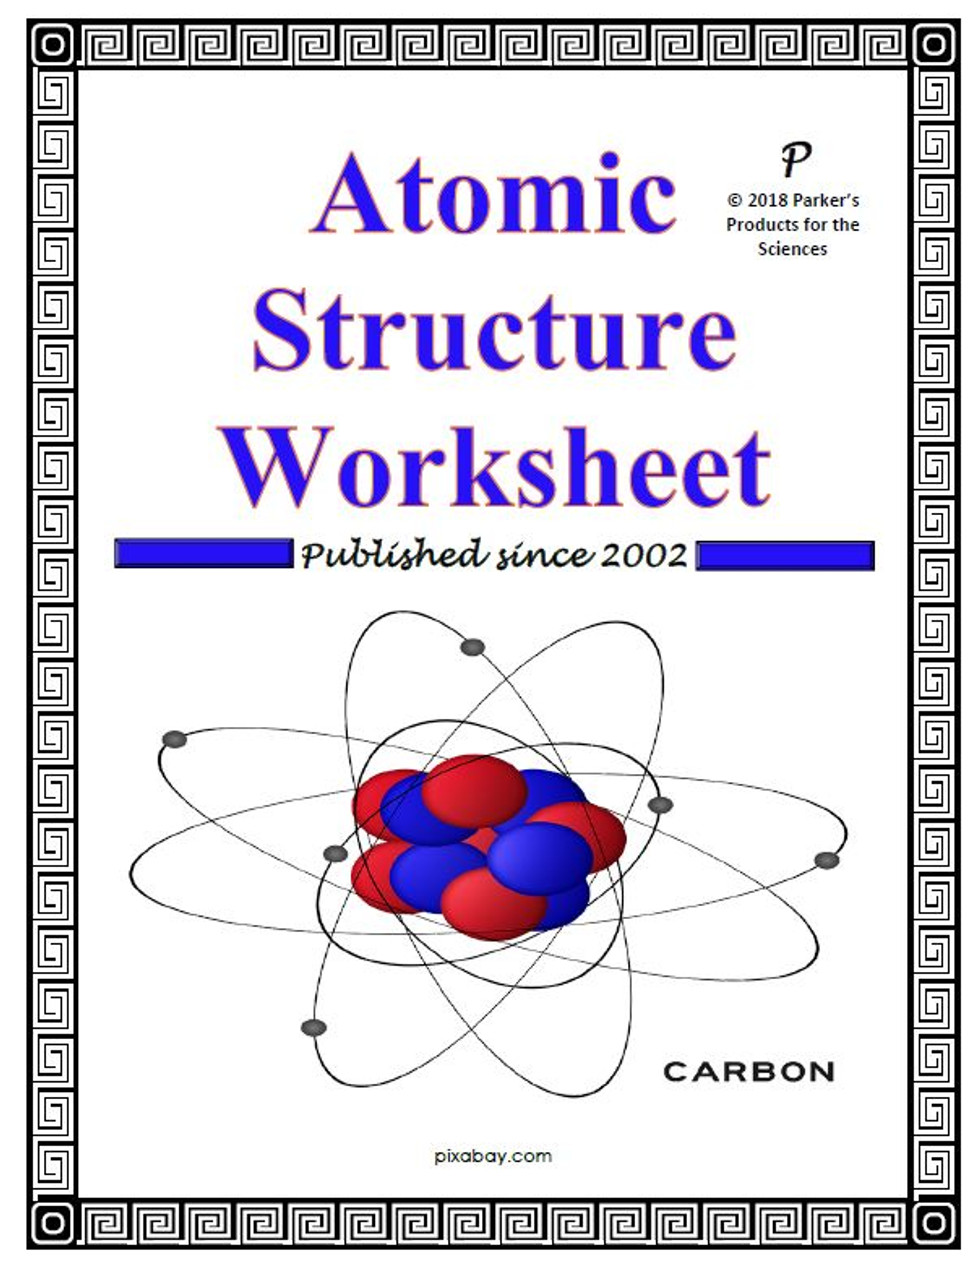 small resolution of Atomic Structure Worksheet - Amped Up Learning